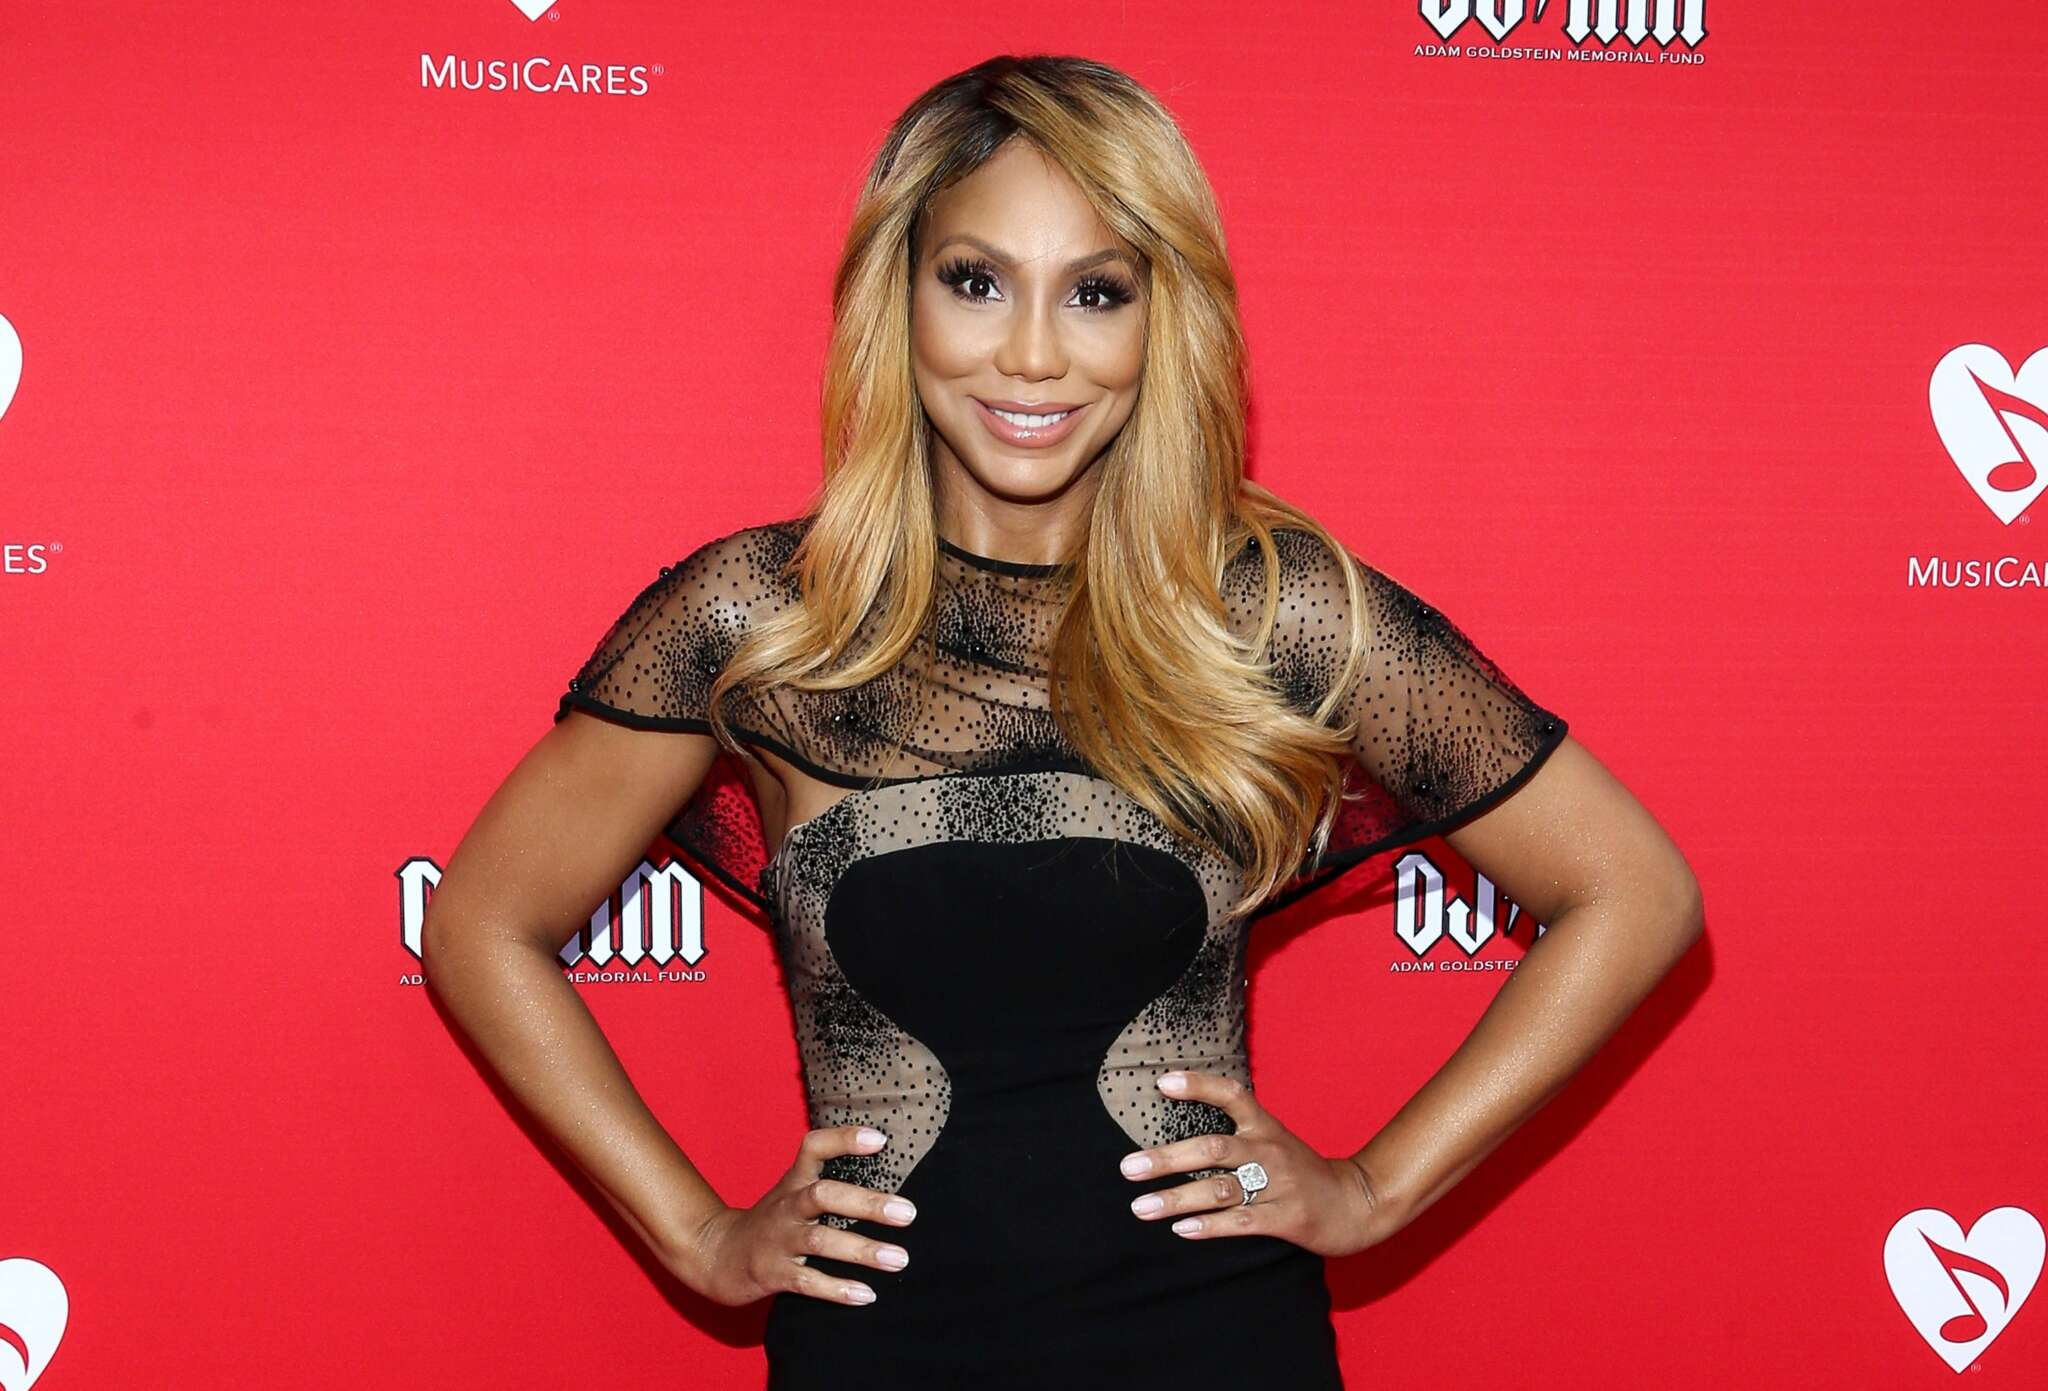 Tamar Braxton Needed A Long Time To Find Her Smile - Check Out Her Emotional Message